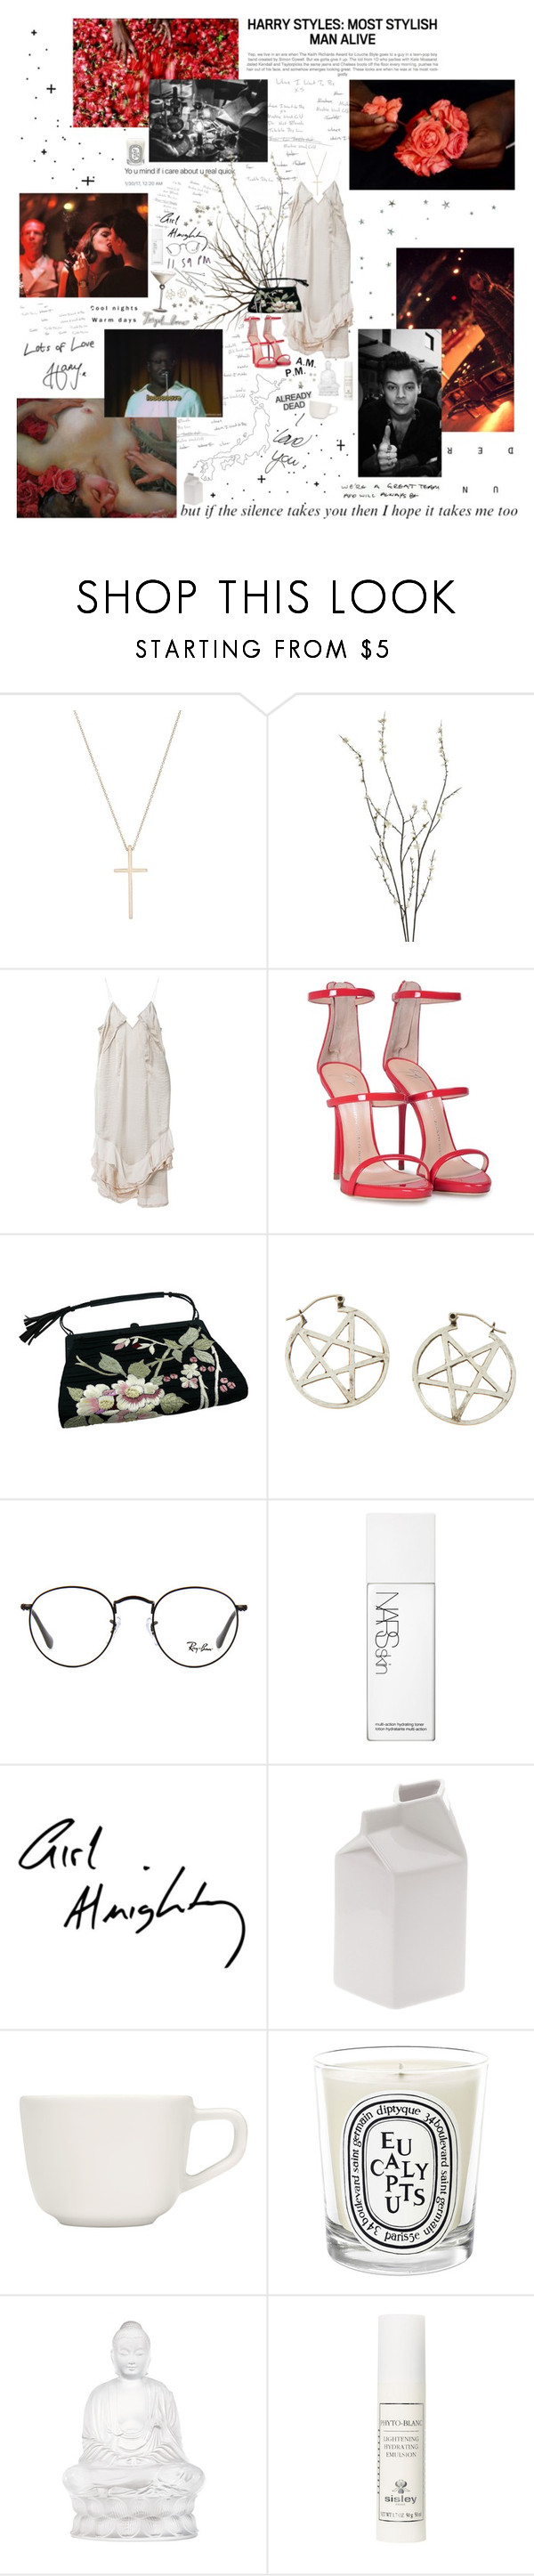 e3592a54b739 by neusex ❤ liked on Polyvore featuring Tiffany